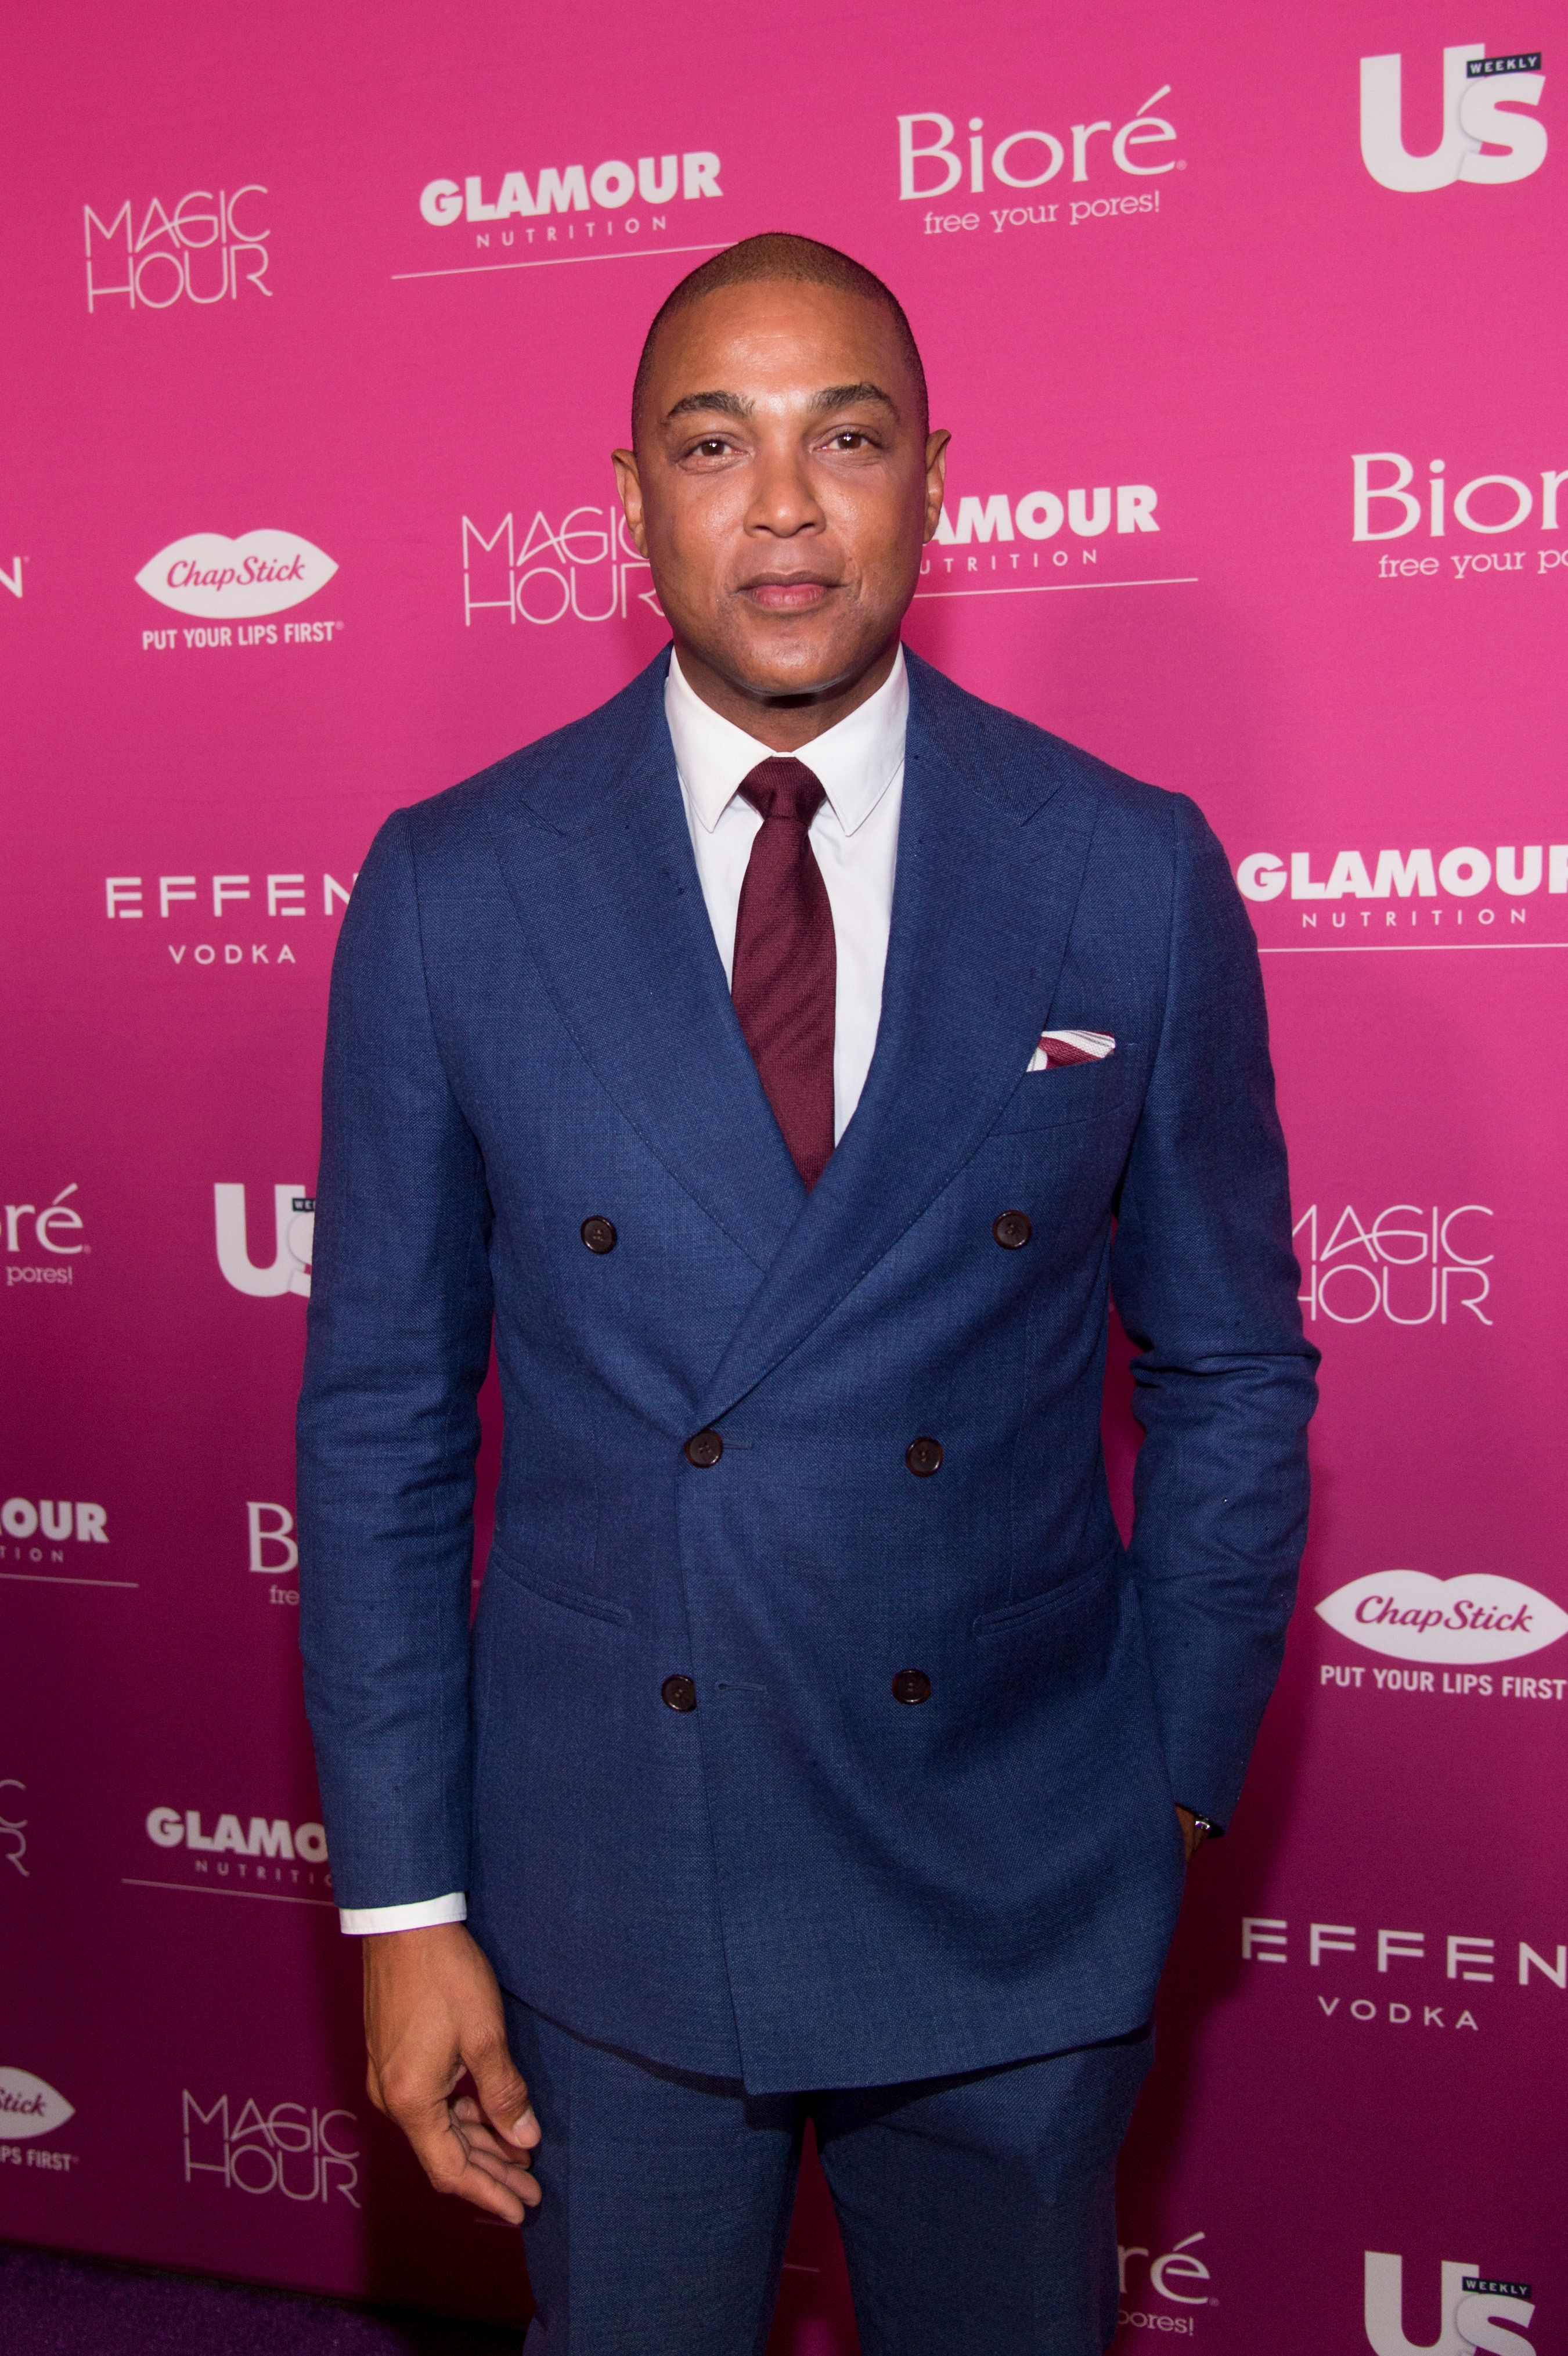 Don Lemon attends Us Weekly's Most Stylish New Yorkers of 2018 party at Magic Hour Rooftop Bar and Lounge on Wednesday, Sept. 12, 2018 in New York. (Photo by Scott Roth/Invision/AP)